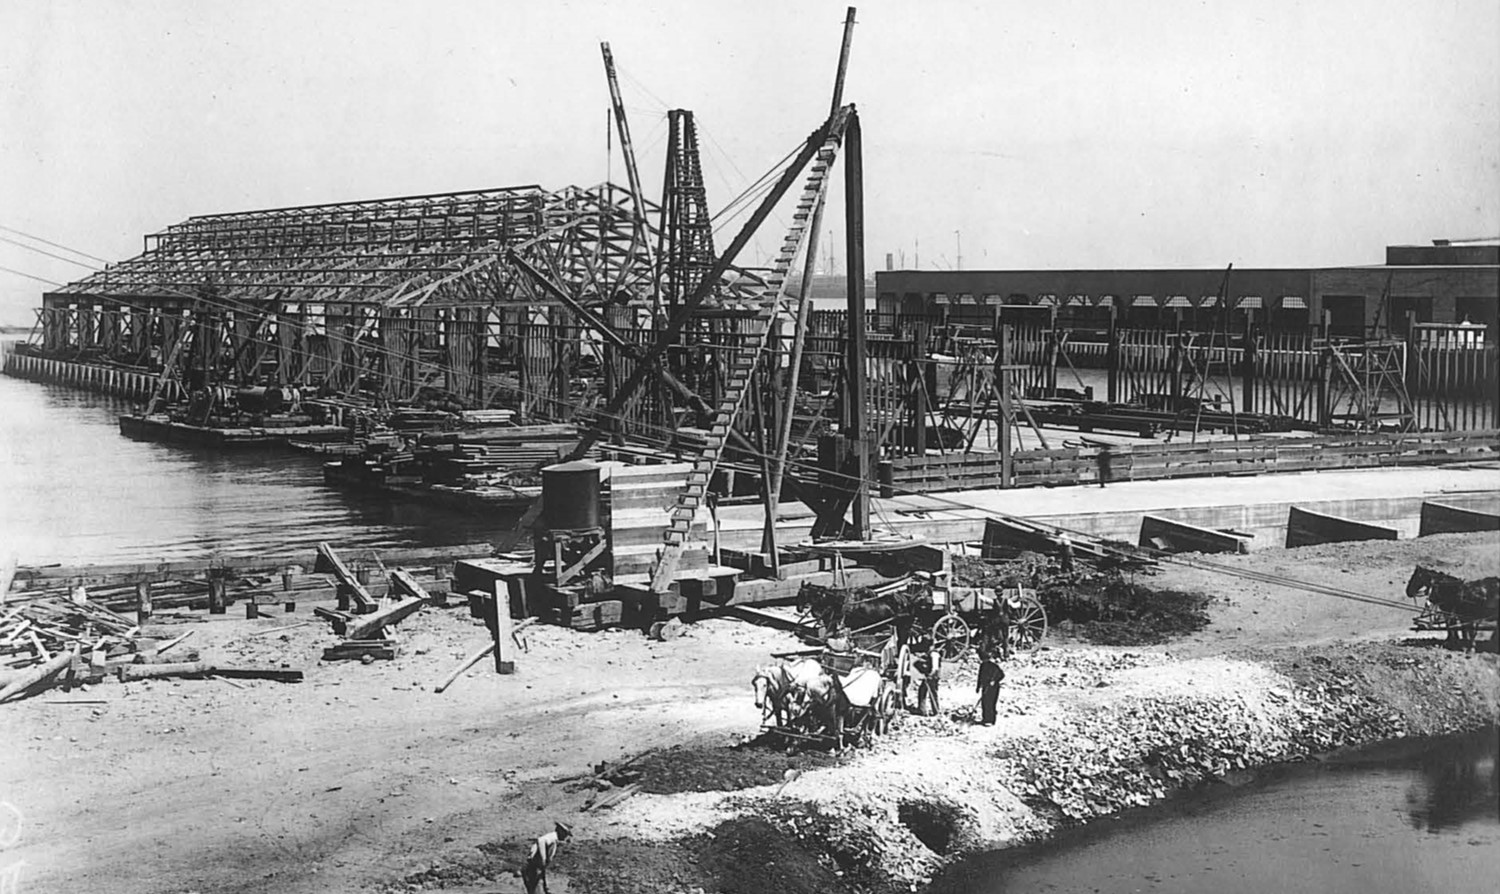 Construction of the Seawall